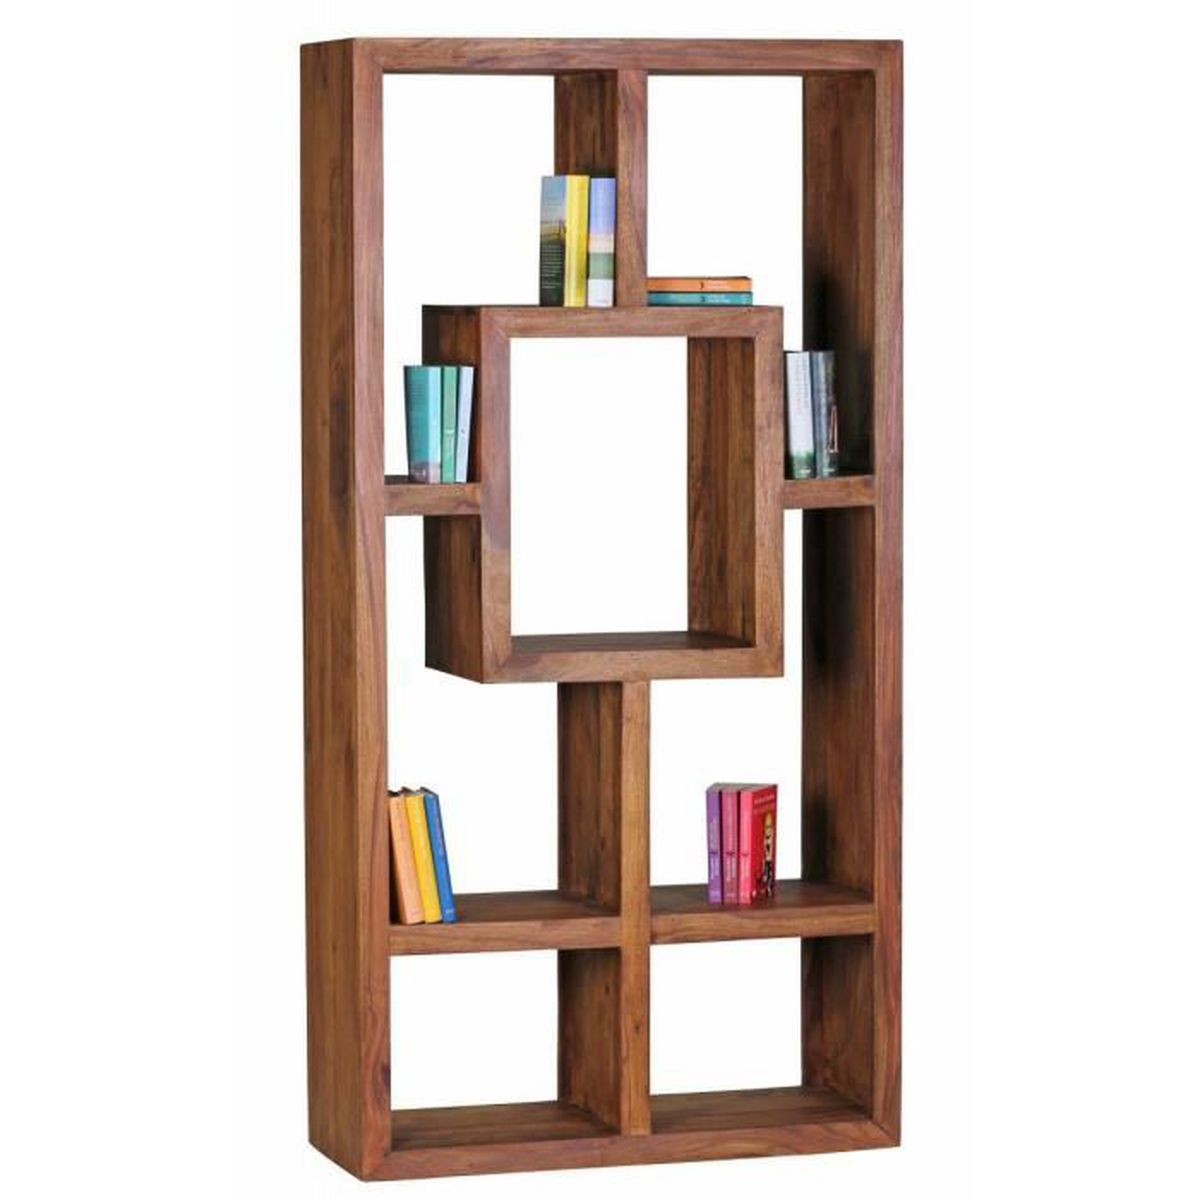 biblioth que en bois massif sheesham 90 x 180 cm living shelf plateaux tag res debout de style. Black Bedroom Furniture Sets. Home Design Ideas